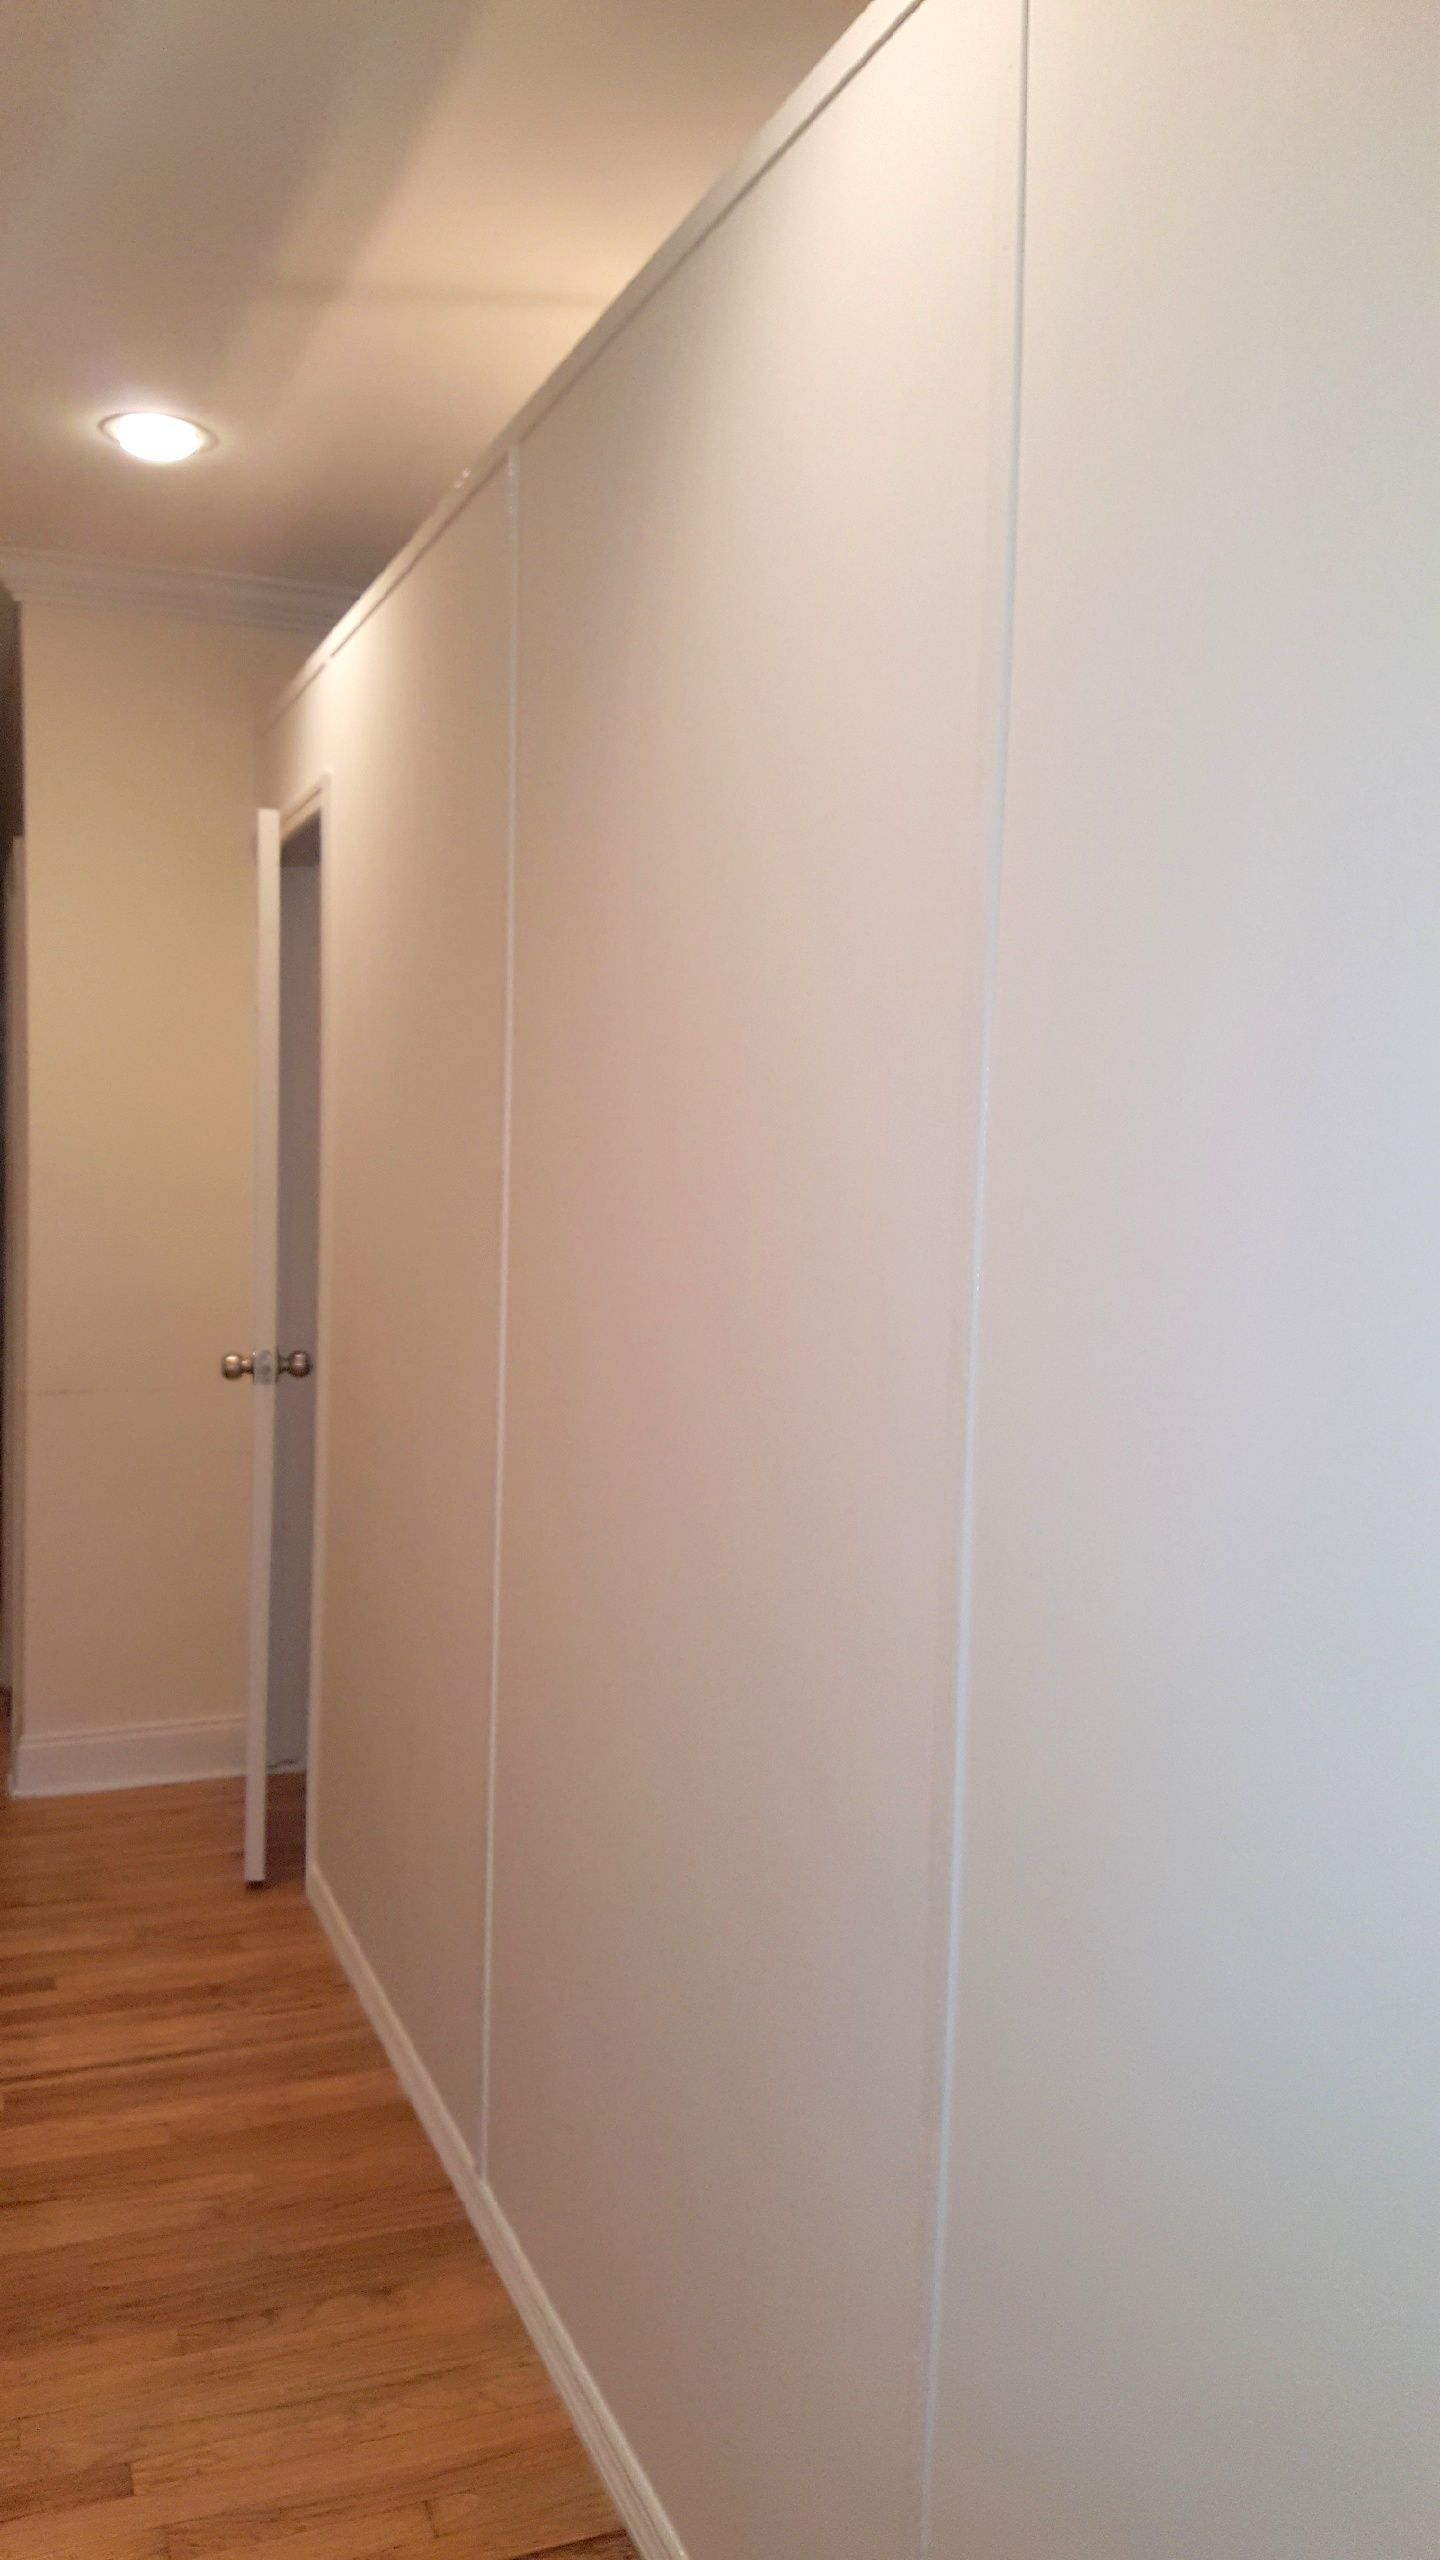 Standard Temporary Room Divider With Swing Door Call Us For All Your Custom Room Partition And S Temporary Wall Divider Temporary Room Dividers Temporary Wall